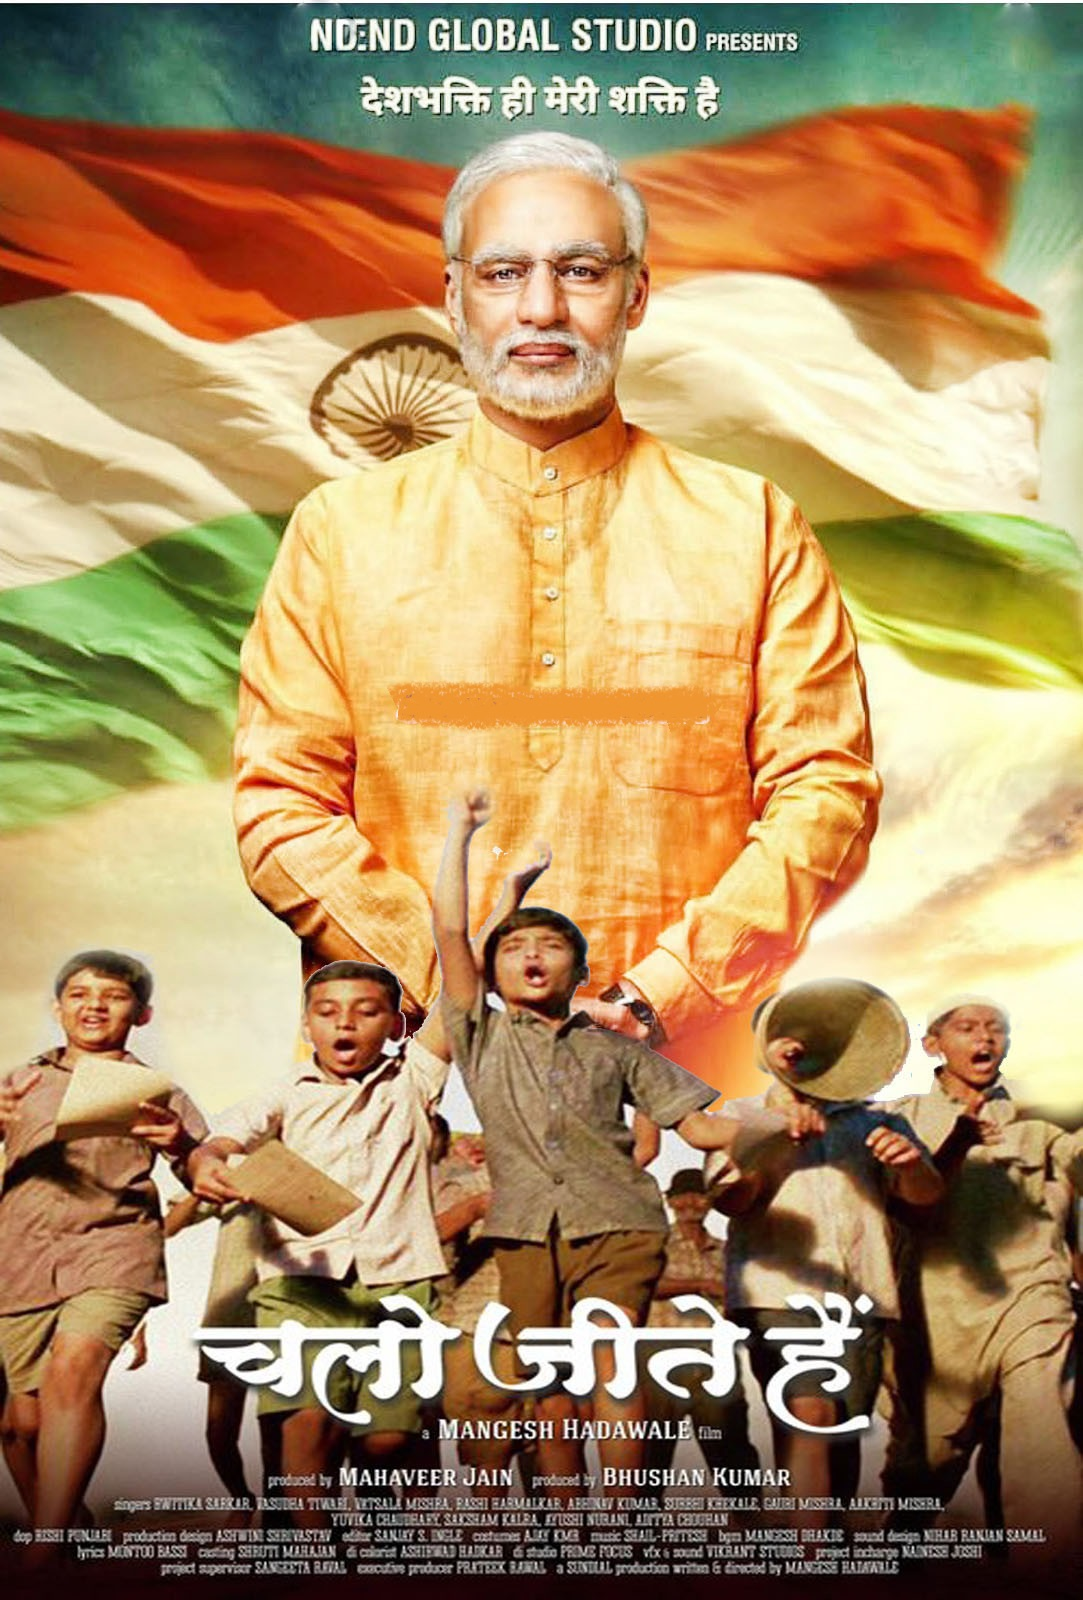 PM Narendra Modi (Chalo Jeete Hain) 2019 Hindi Short Flim 720p HDRip x264 200MB Free Download